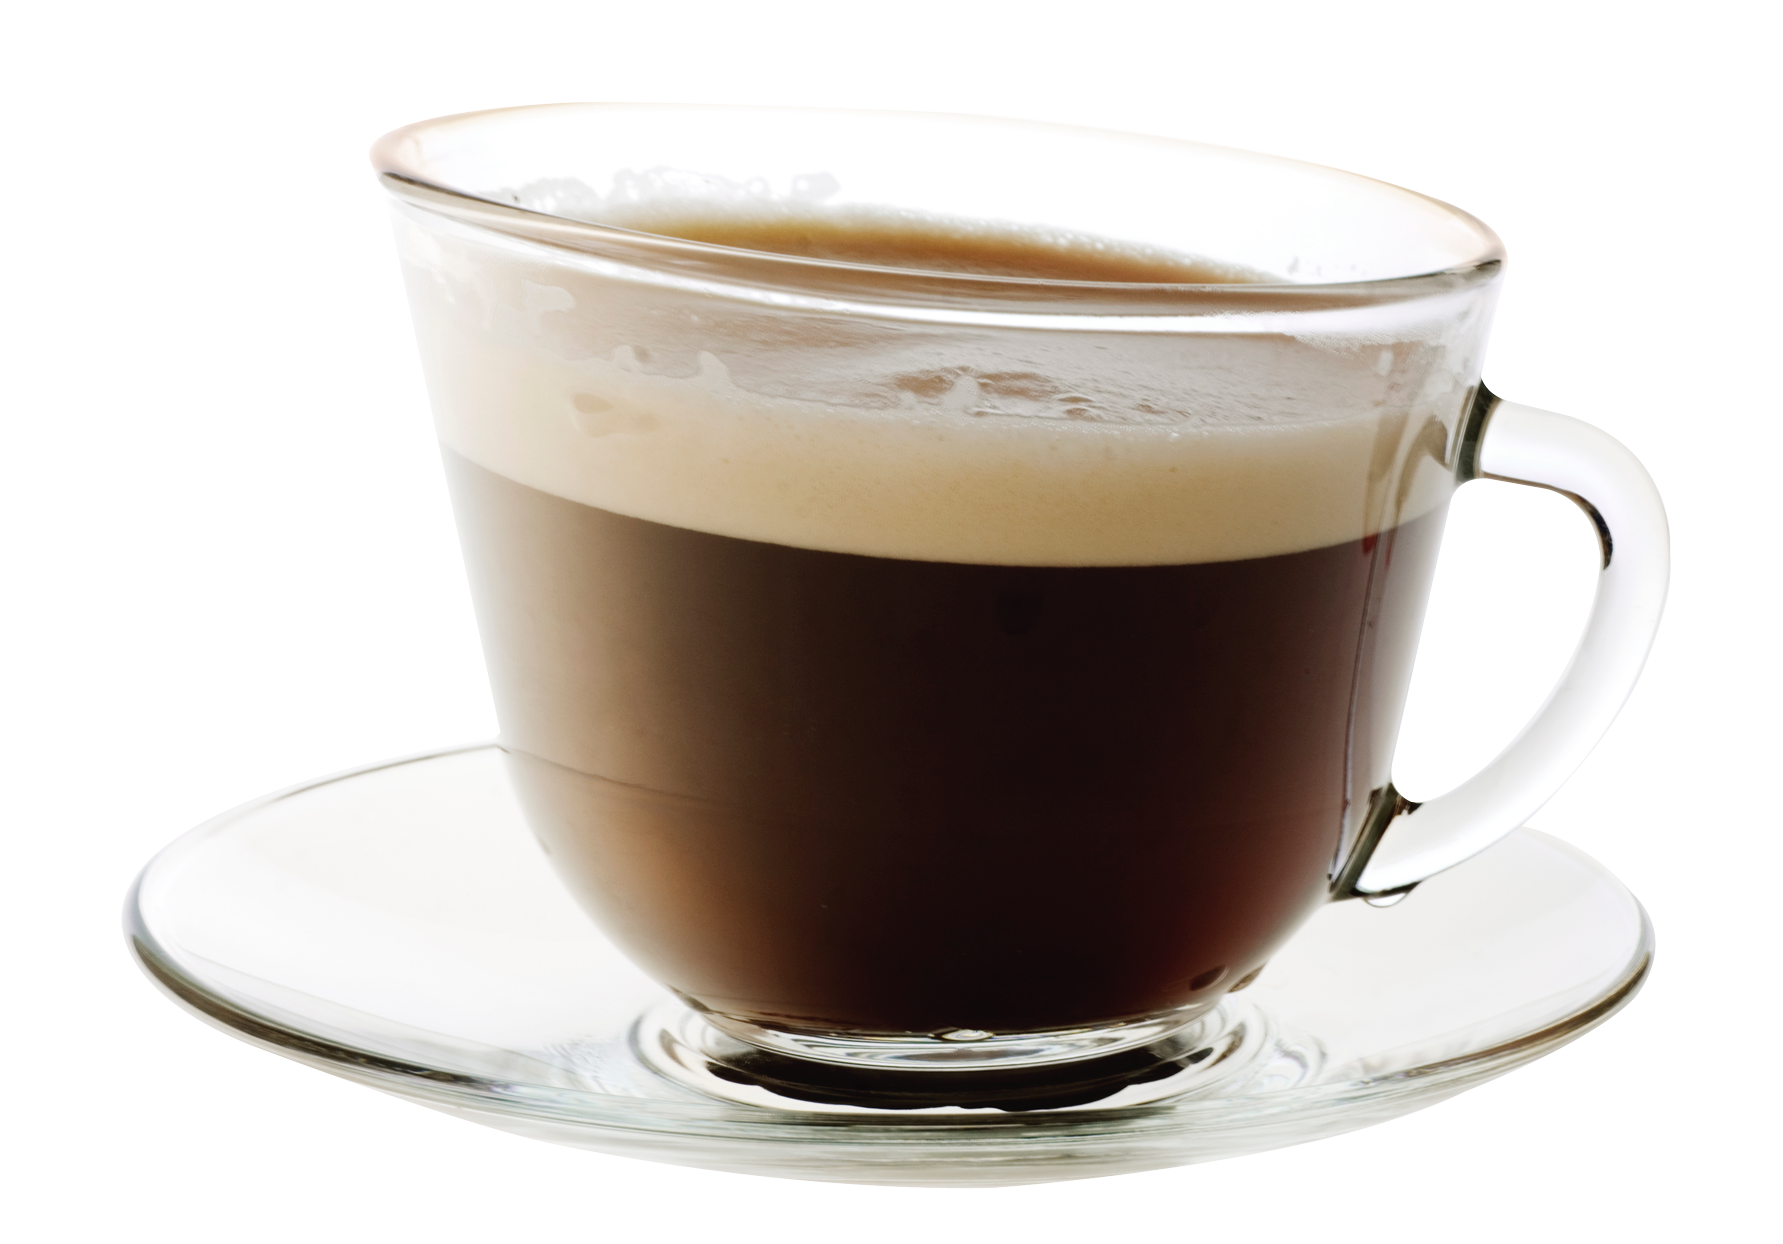 Coffee Cup Png File - Coffee, Transparent background PNG HD thumbnail